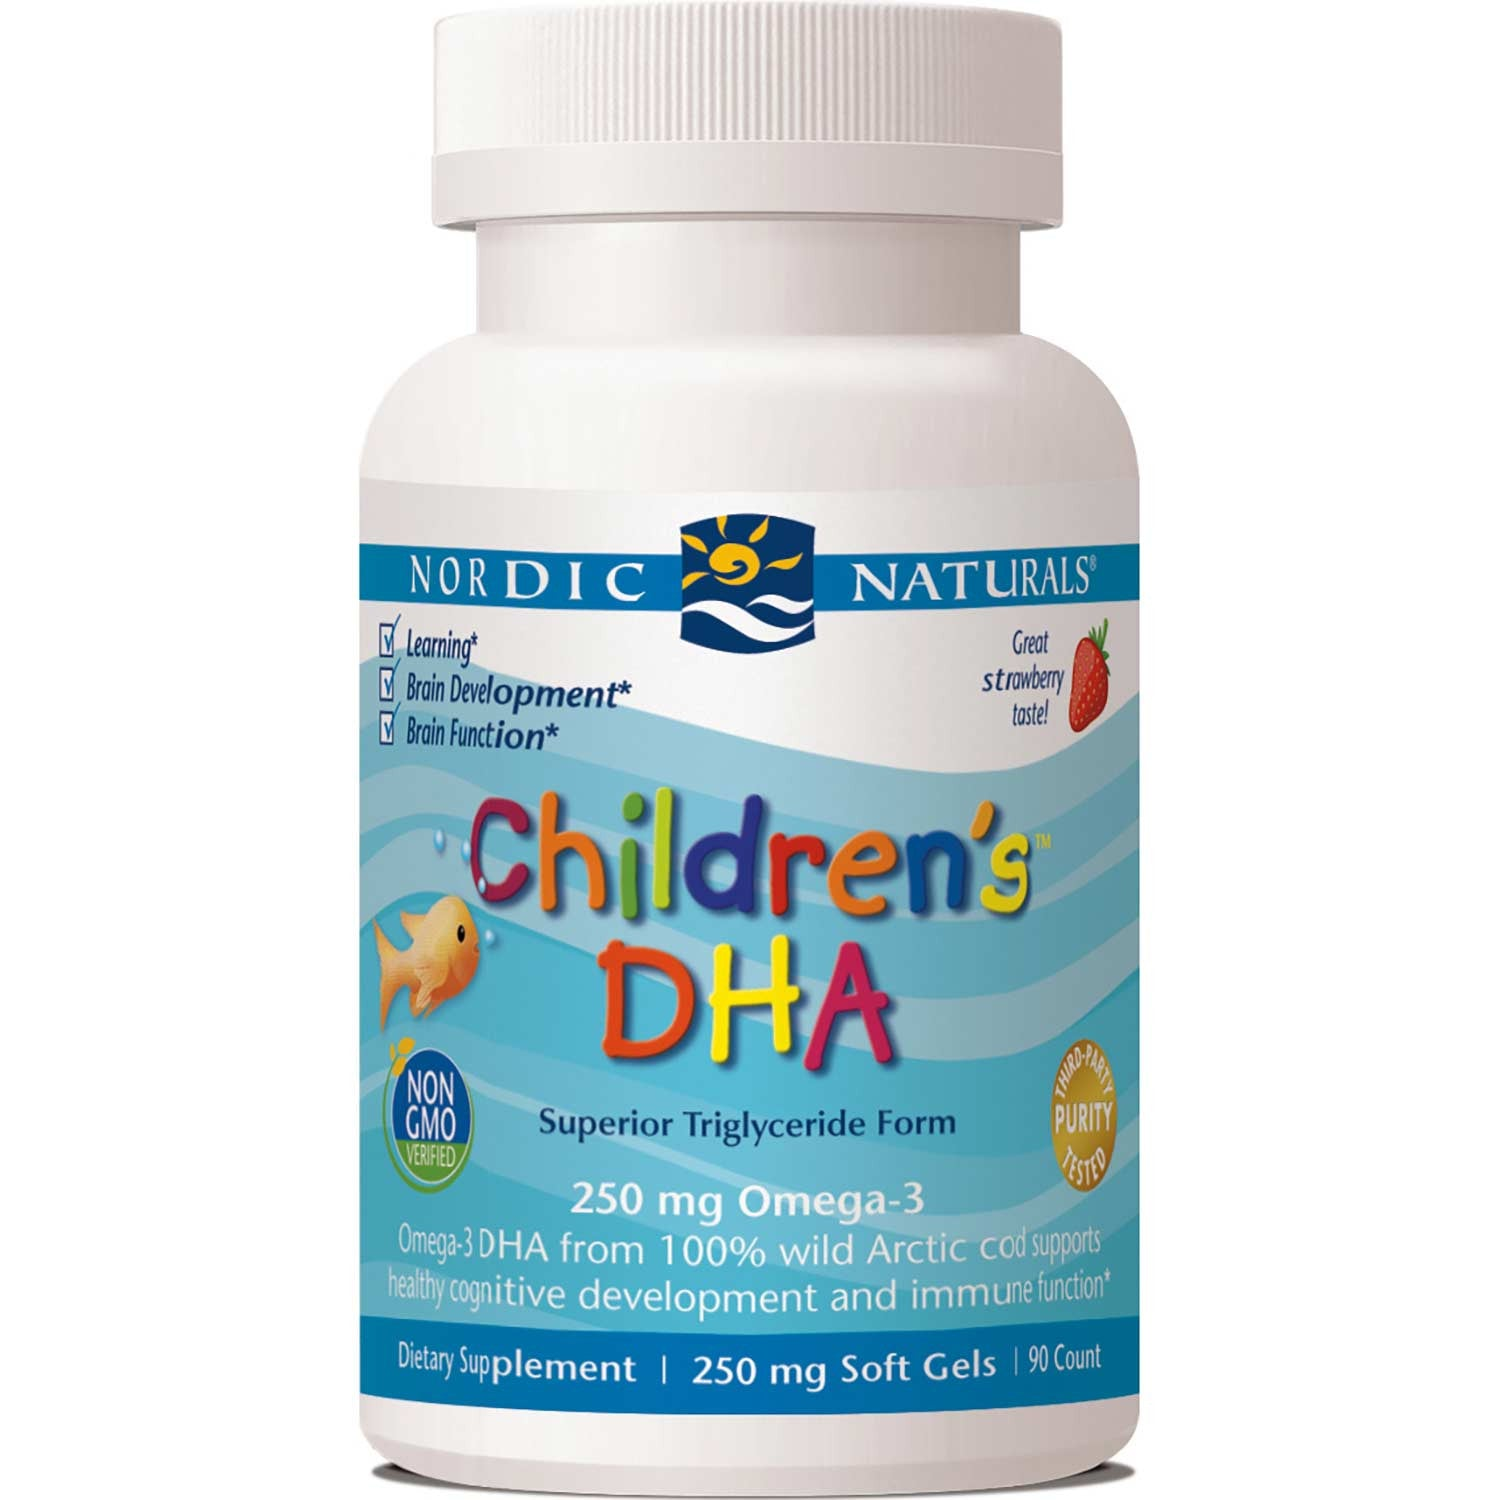 Nordic Naturals Children's DHA 250 mg - Strawberry, 90 sgls.-NaturesWisdom